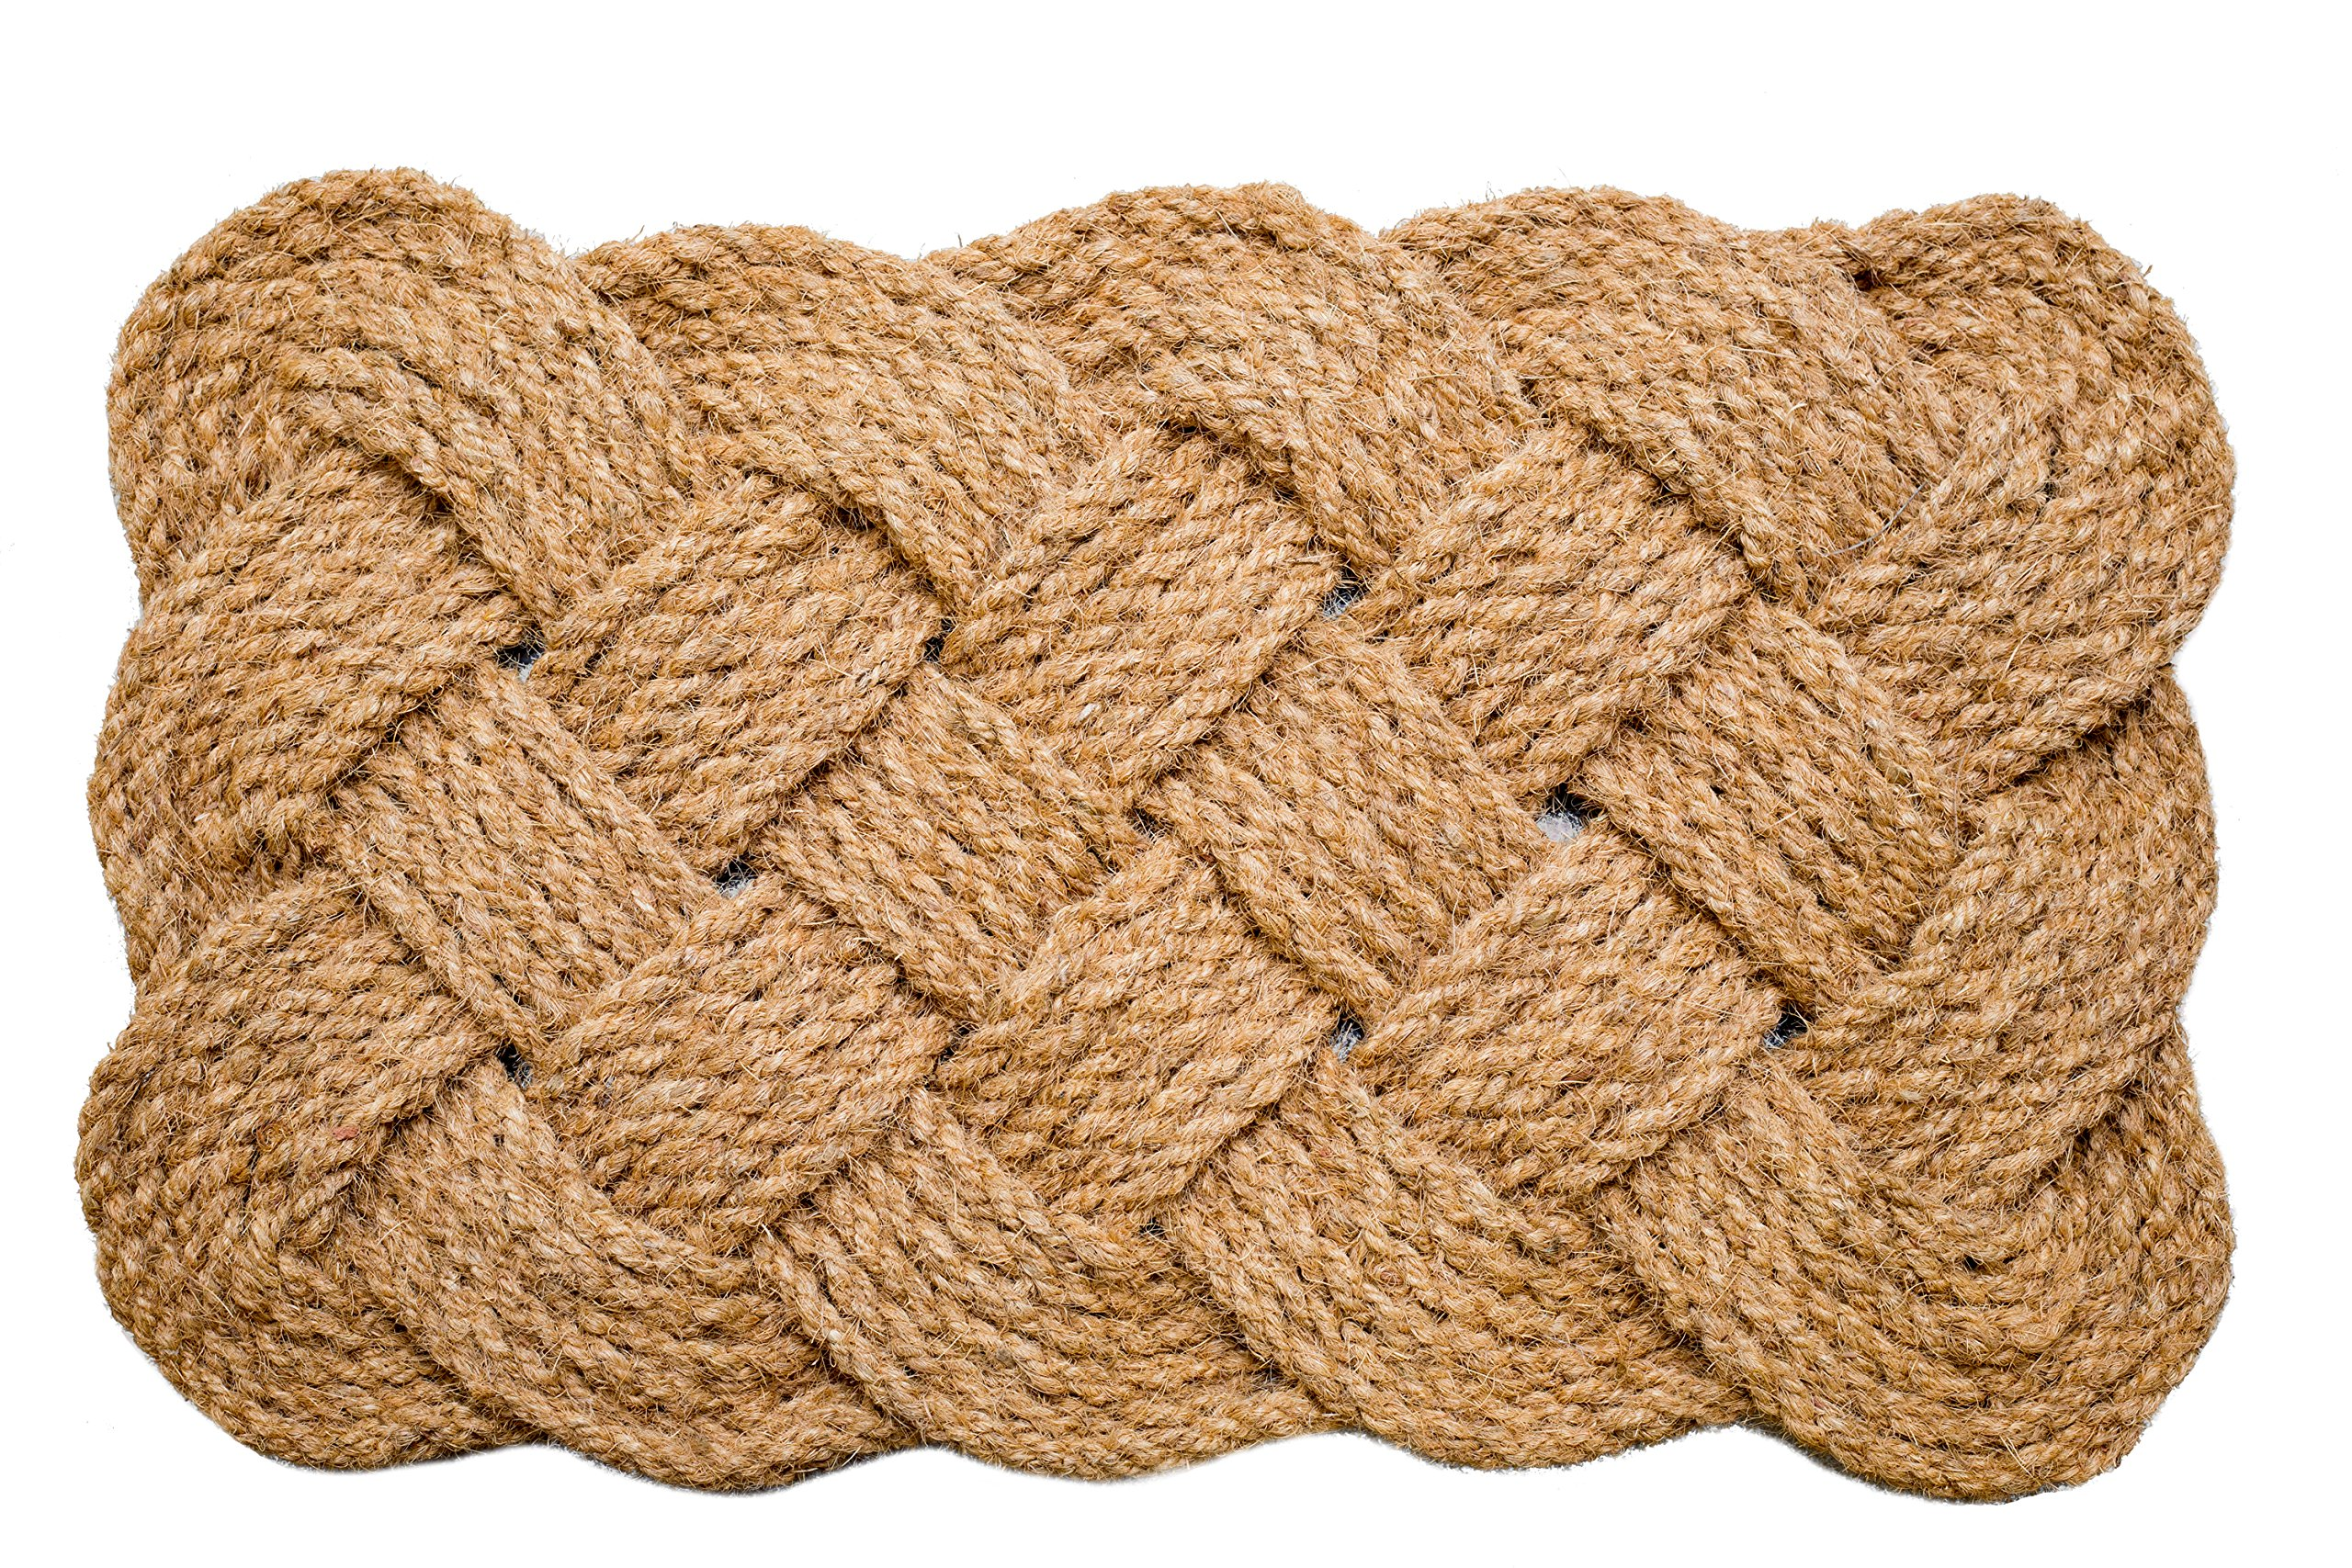 Iron Gate - Natural Jute Rope Woven Doormat 18x30 - Single Pack - 100% All Natural Fibers - Eco-friendly - Classic Interwoven Rope Design by Iron Gate